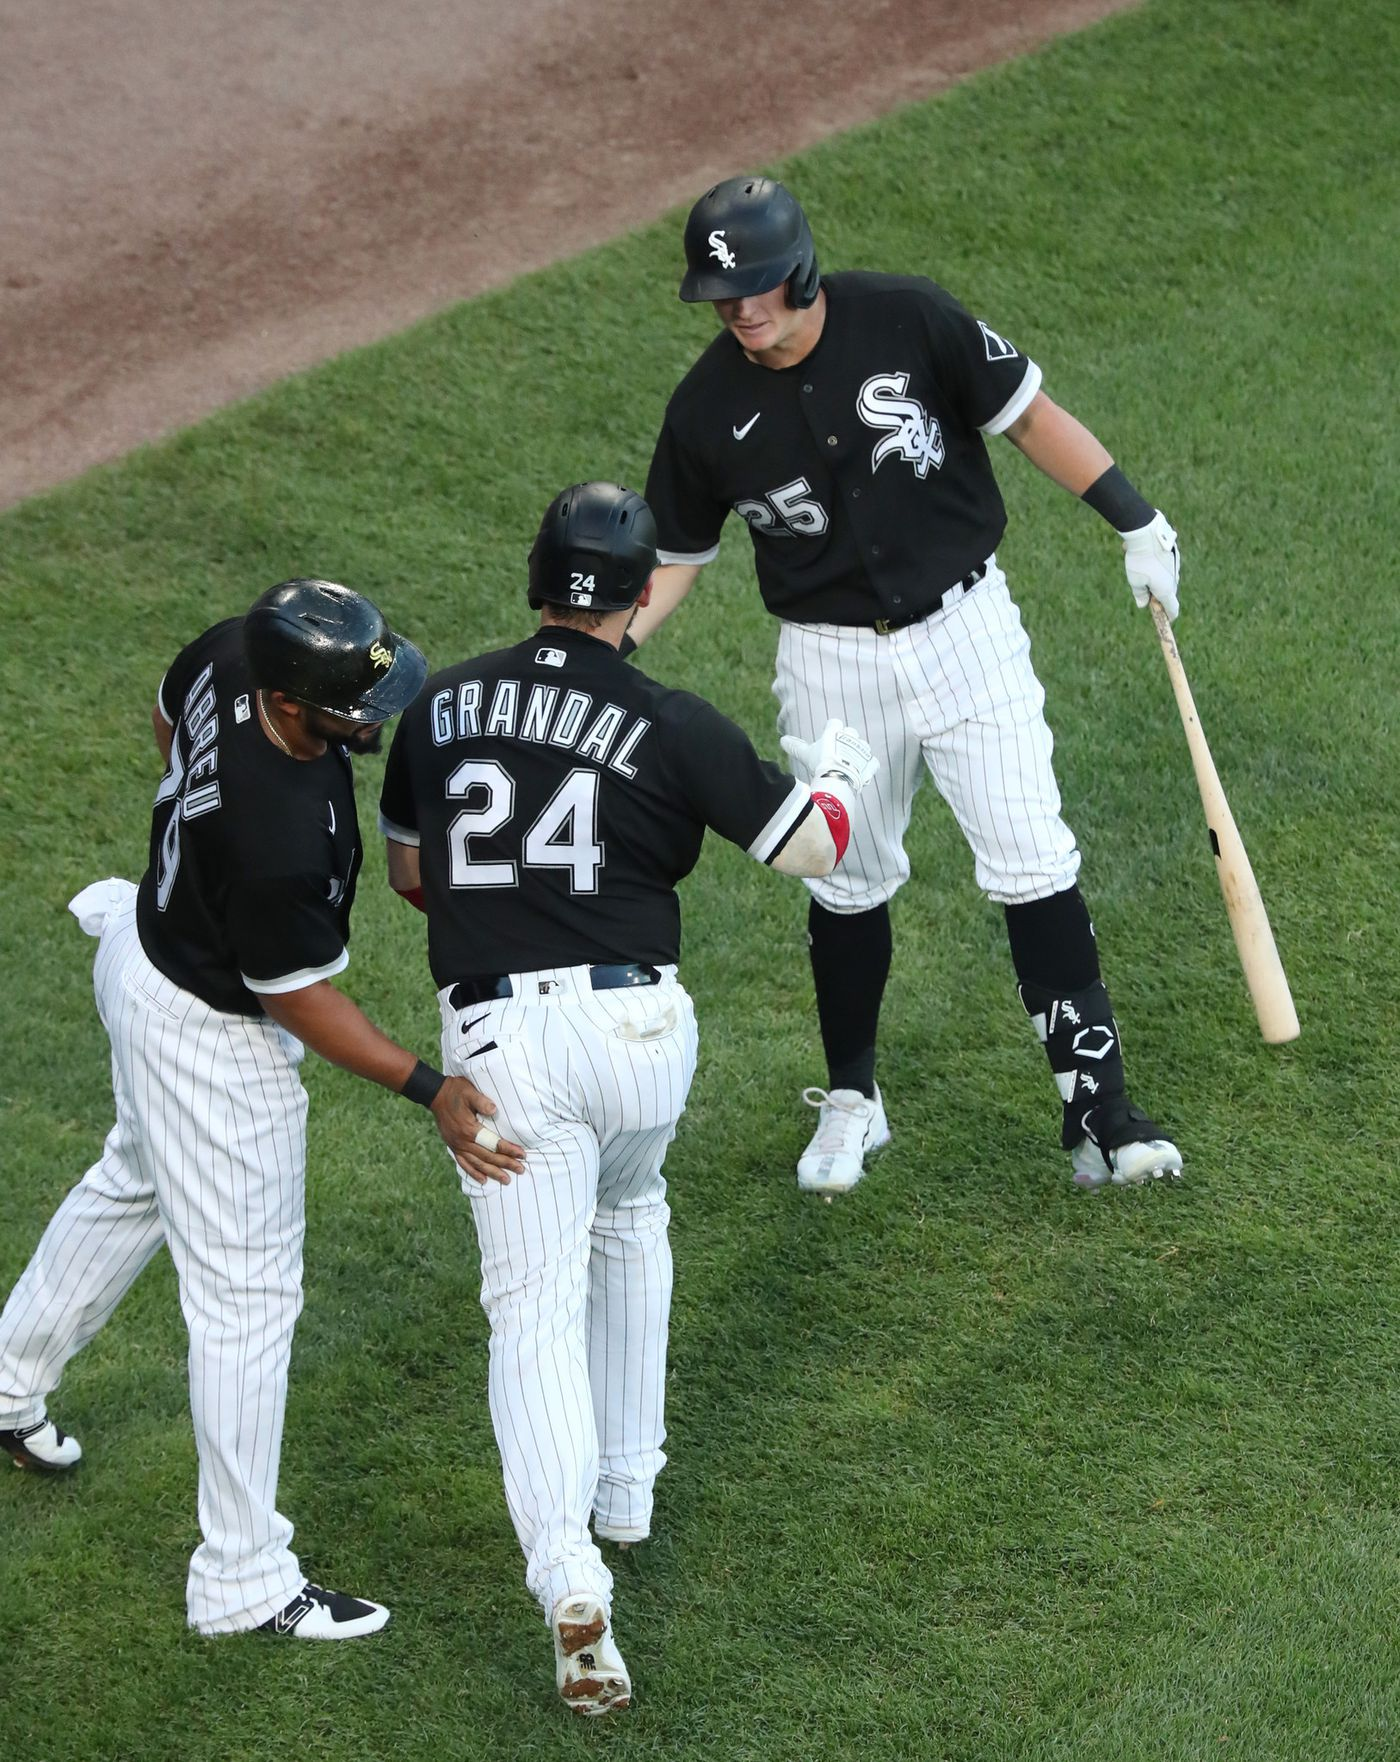 White Sox catcher Yasmani Grandal is congratulated by teammates after hitting a two-run home run in the first inning against the Blue Jays on June 10, 2021, at Guaranteed Rate Field.